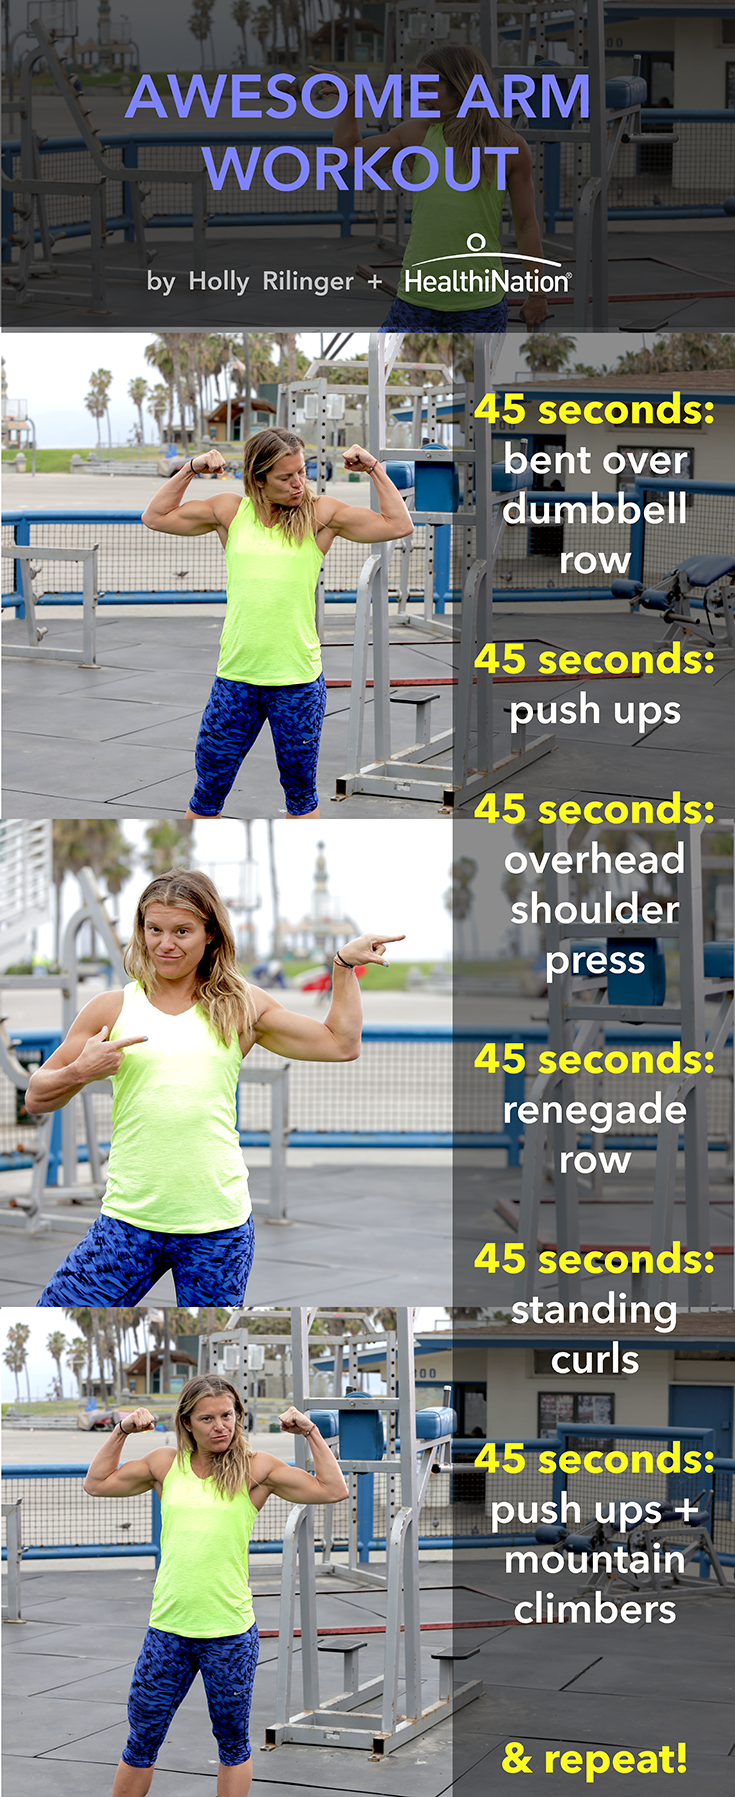 Get Your Arms In Amazing Shape With This Awesome Arm Workout Kickstart